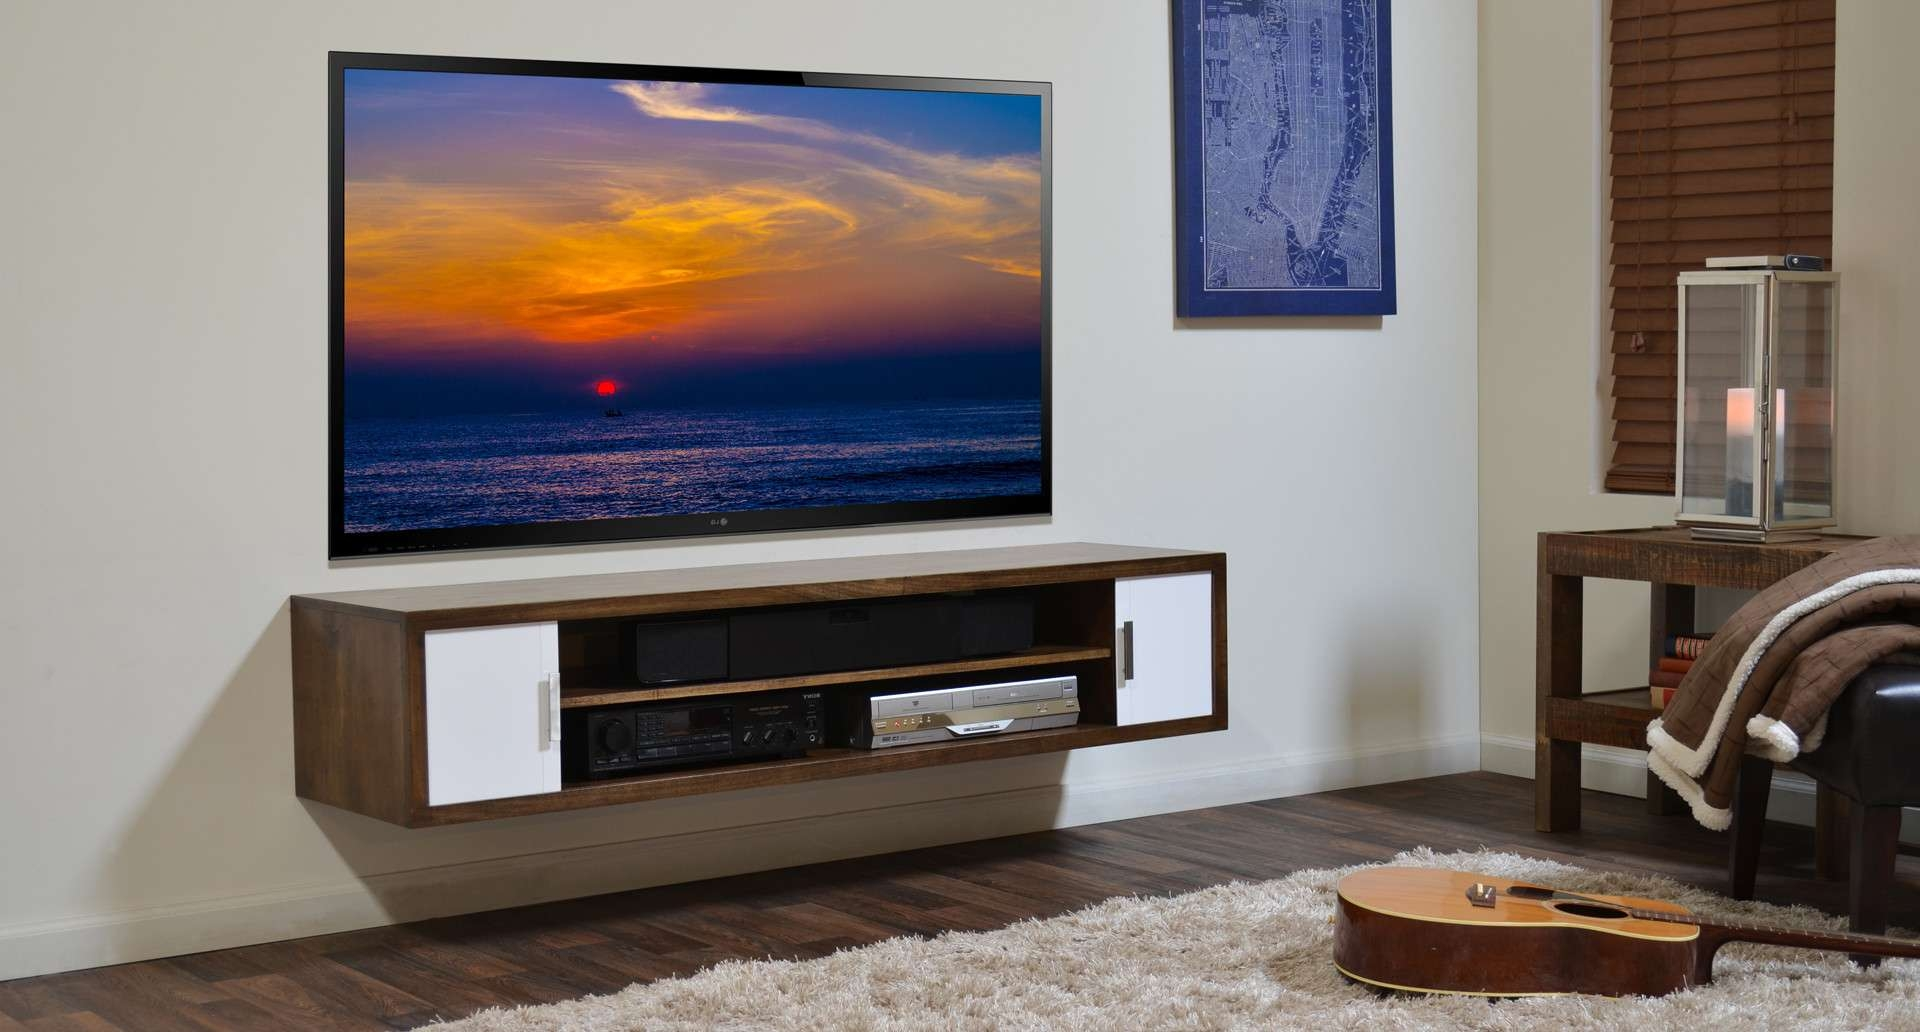 Hanging Tv Cabinet With Doors Choice Image – Doors Design Ideas Throughout Wall Mounted Tv Cabinets For Flat Screens With Doors (View 19 of 20)